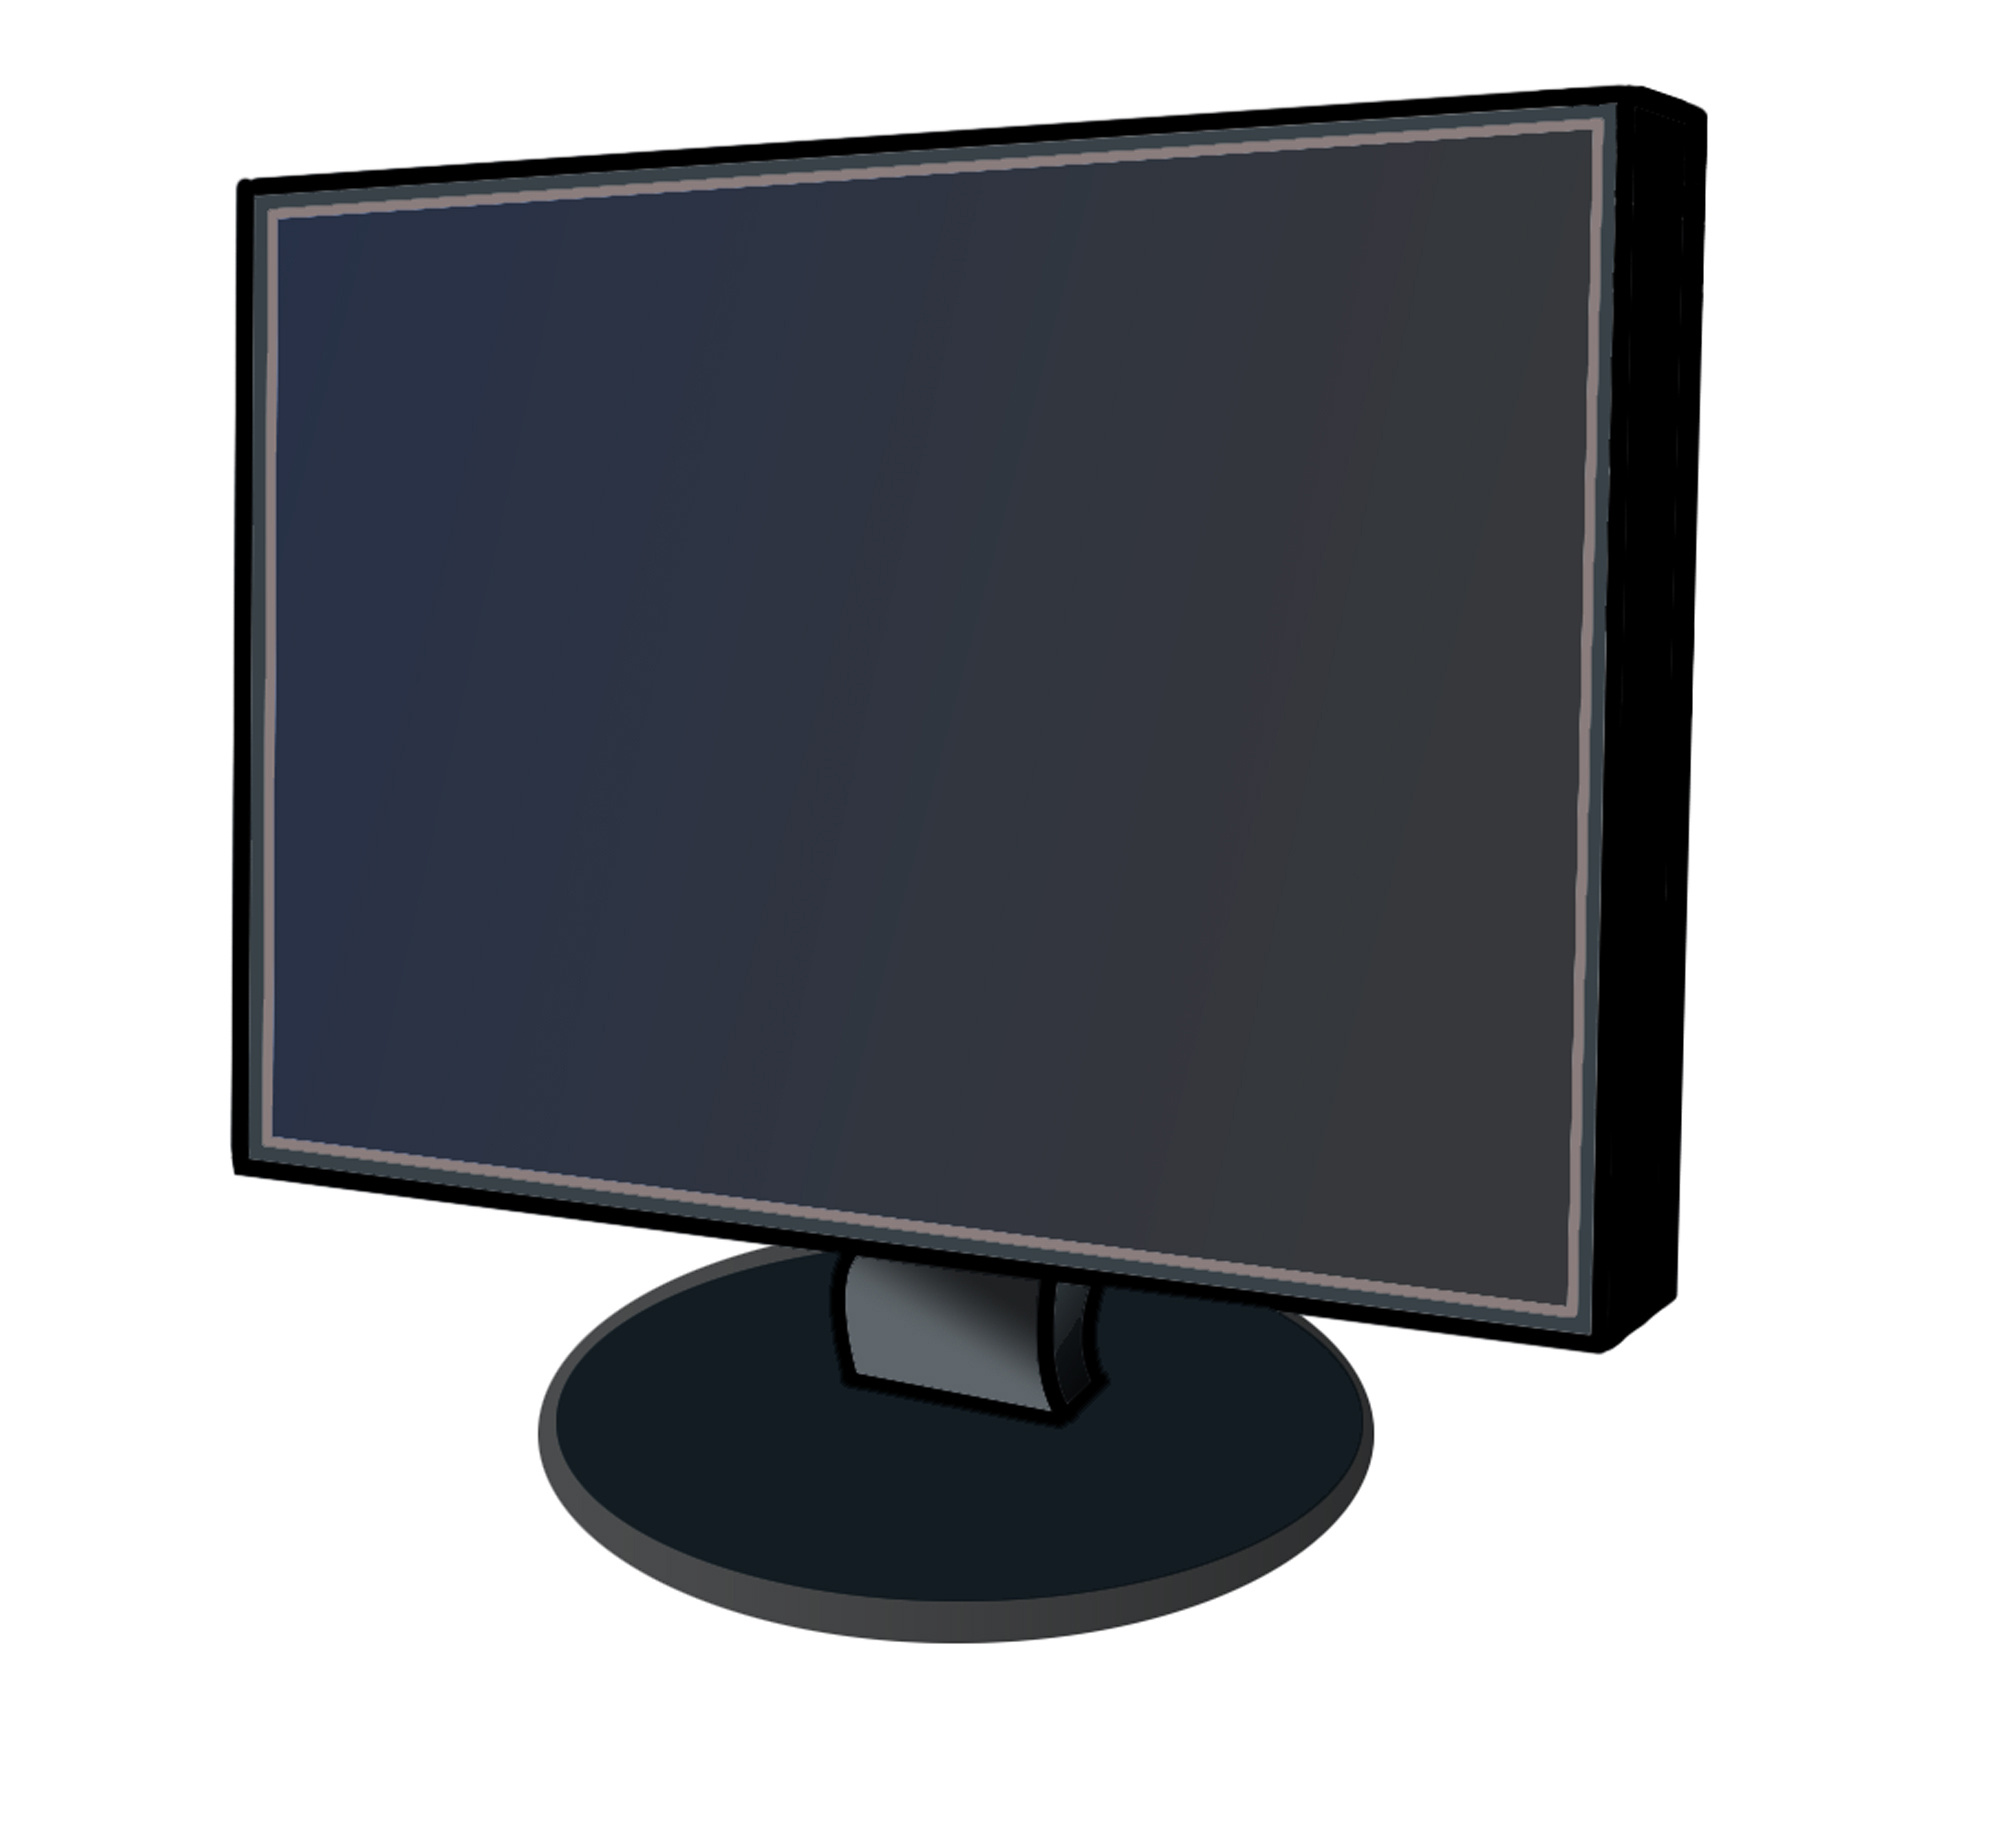 monitor clipart clipart suggest